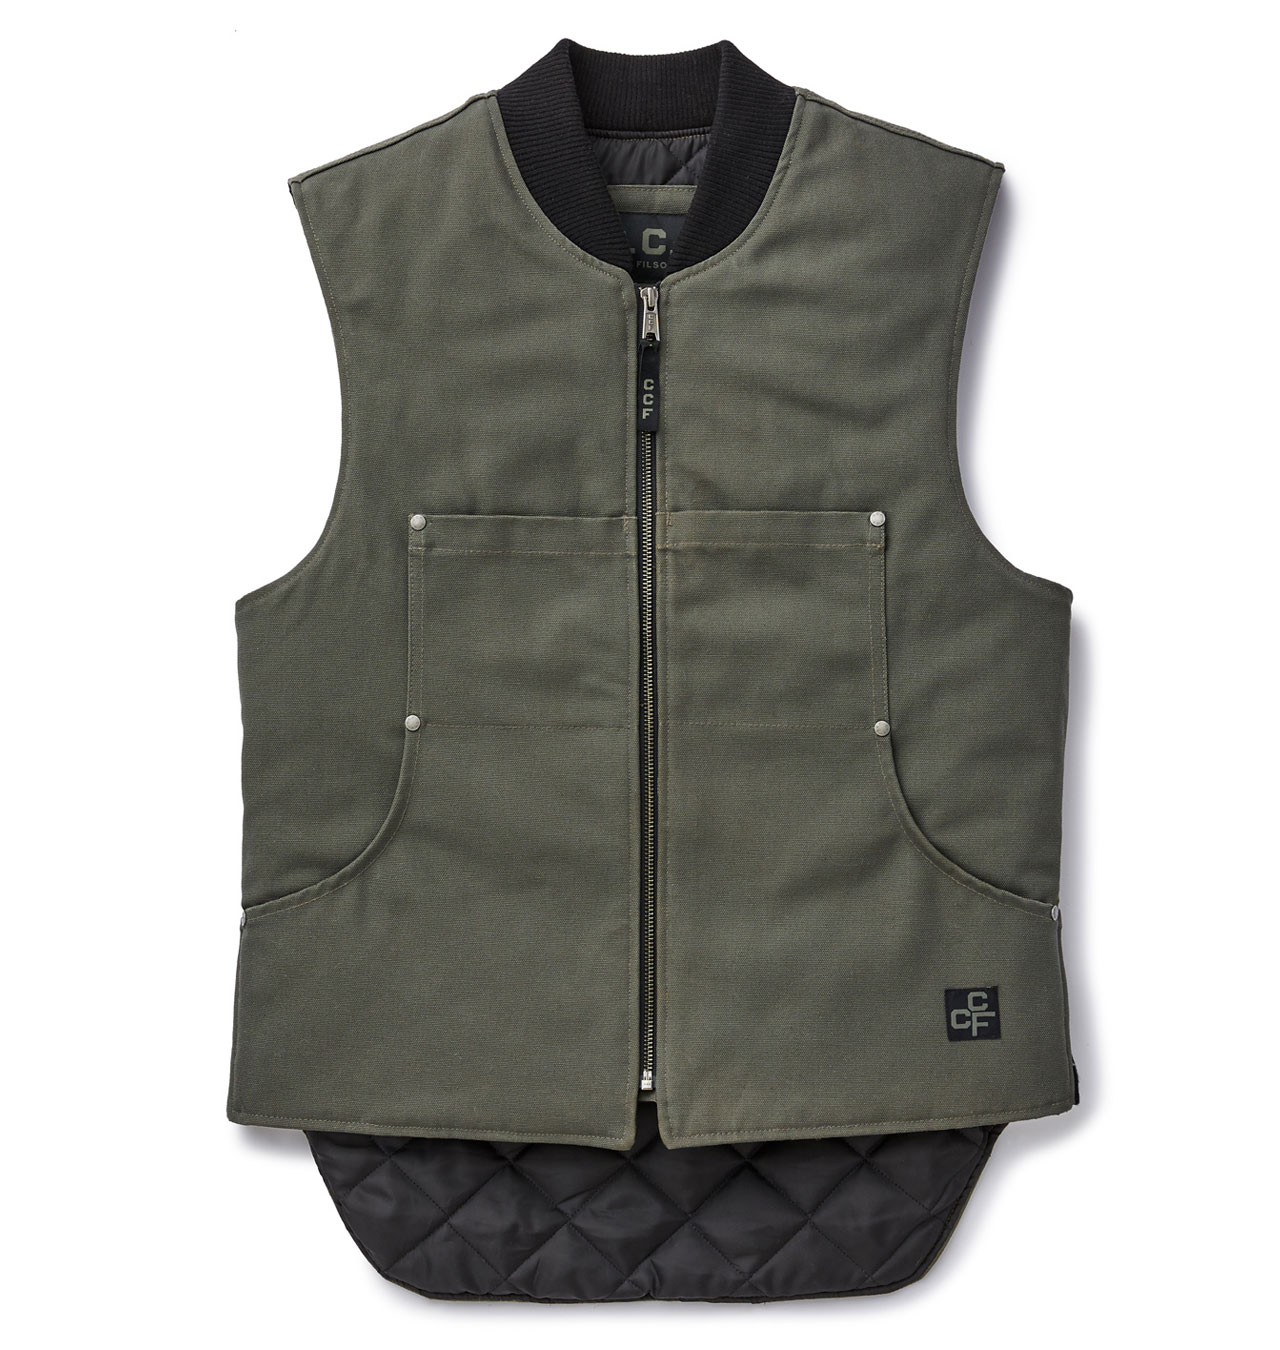 Filson - CCF Work Vest - Cannonball Green